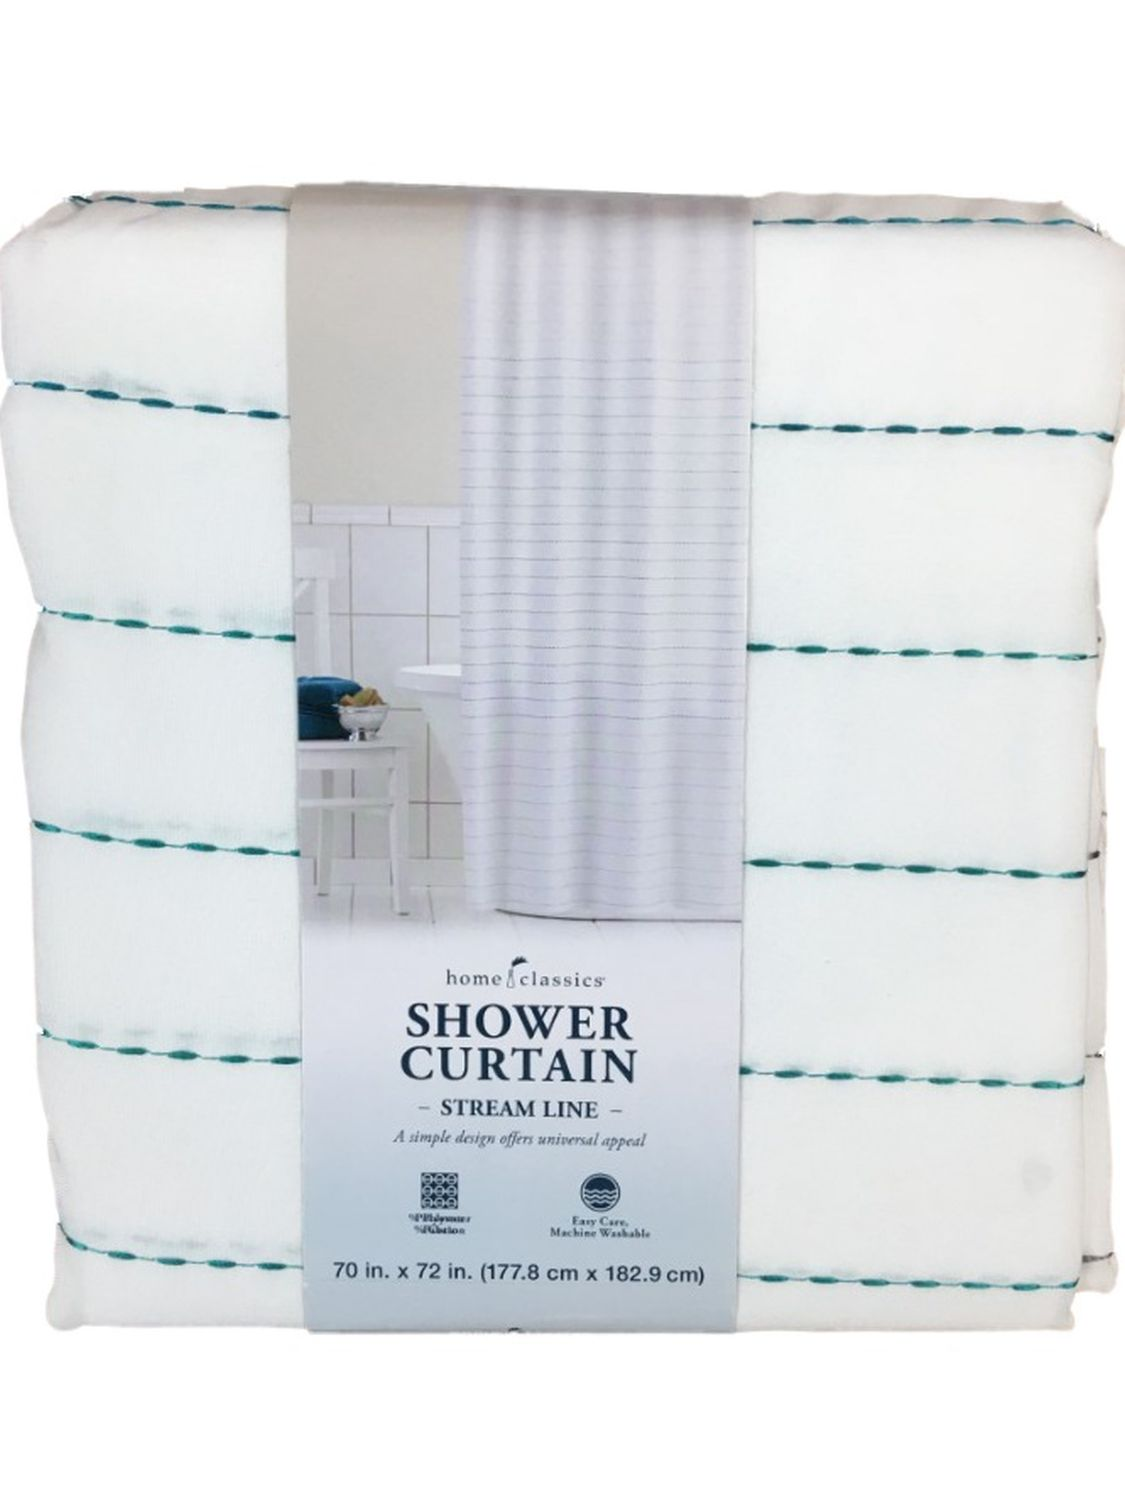 home classics teal blue embroidered fabric shower curtain stitched lines bath